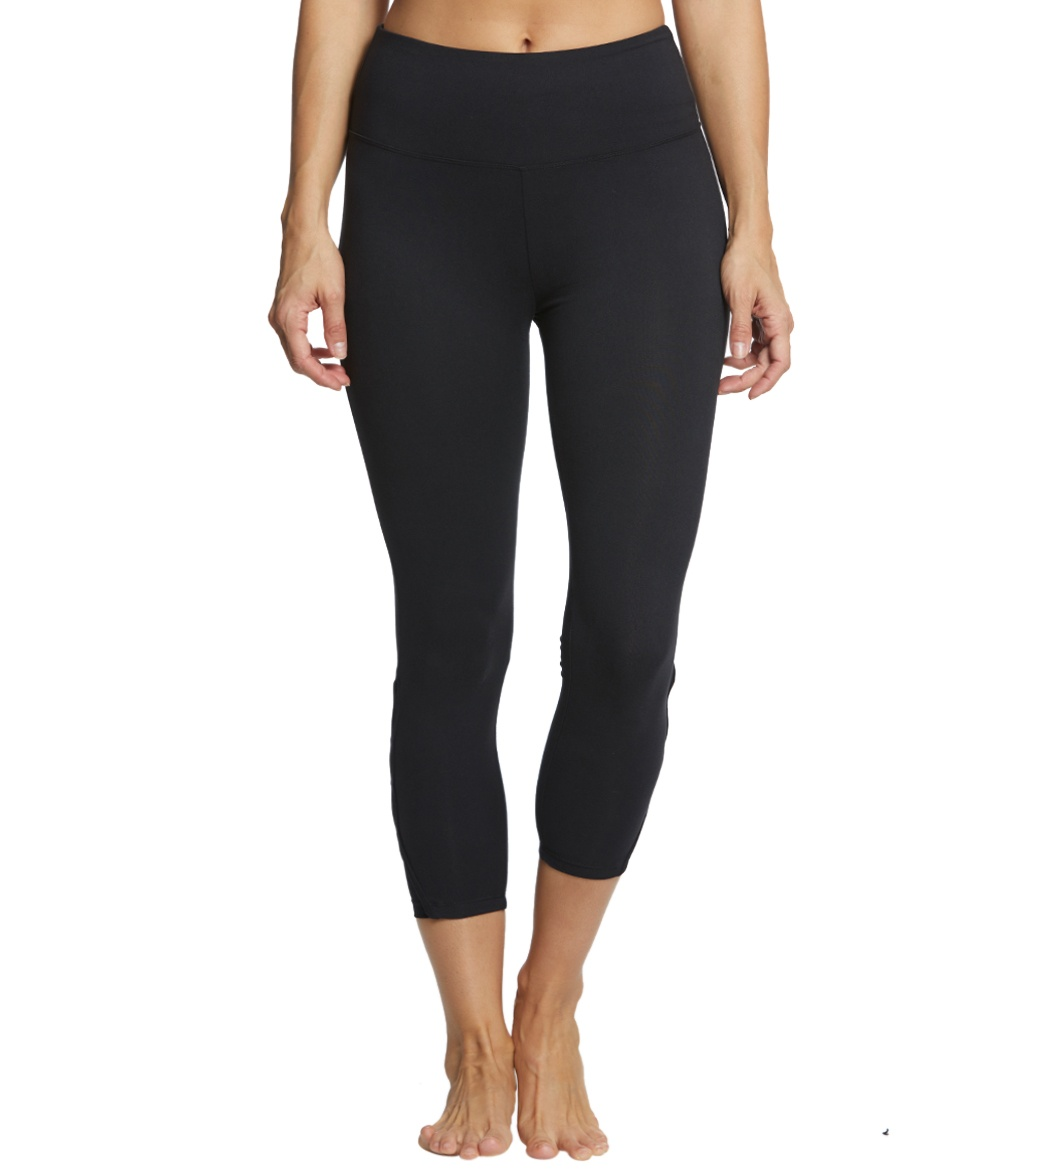 c8424ac654f2a Balance Collection Abigail Yoga Capris at YogaOutlet.com - Free Shipping